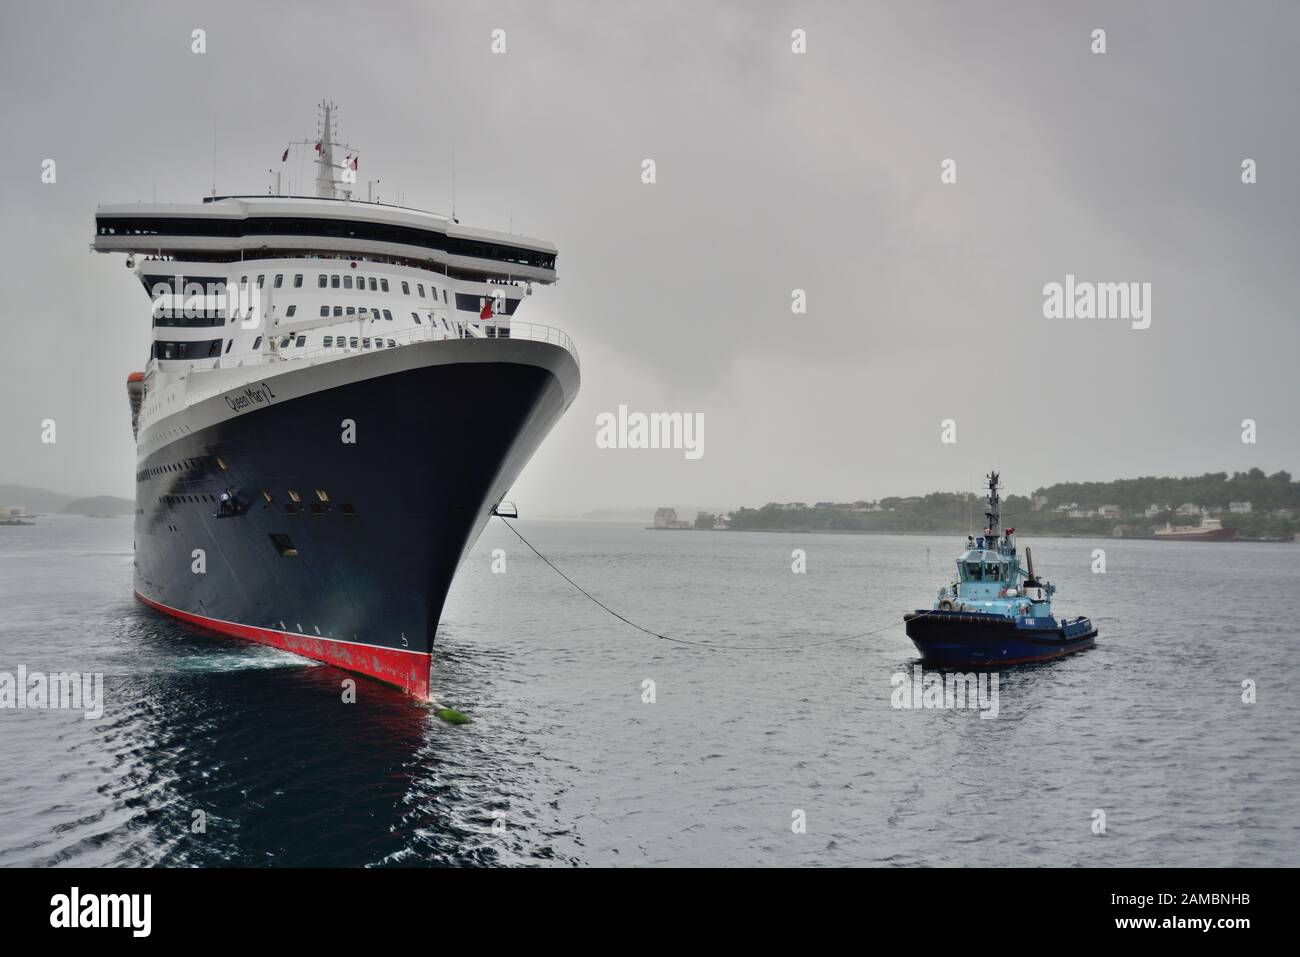 Cunard liner Queen Mary II being assisted by a tug boat as it leaves the dockside at Alesund on a wet and overcast day. Stock Photo